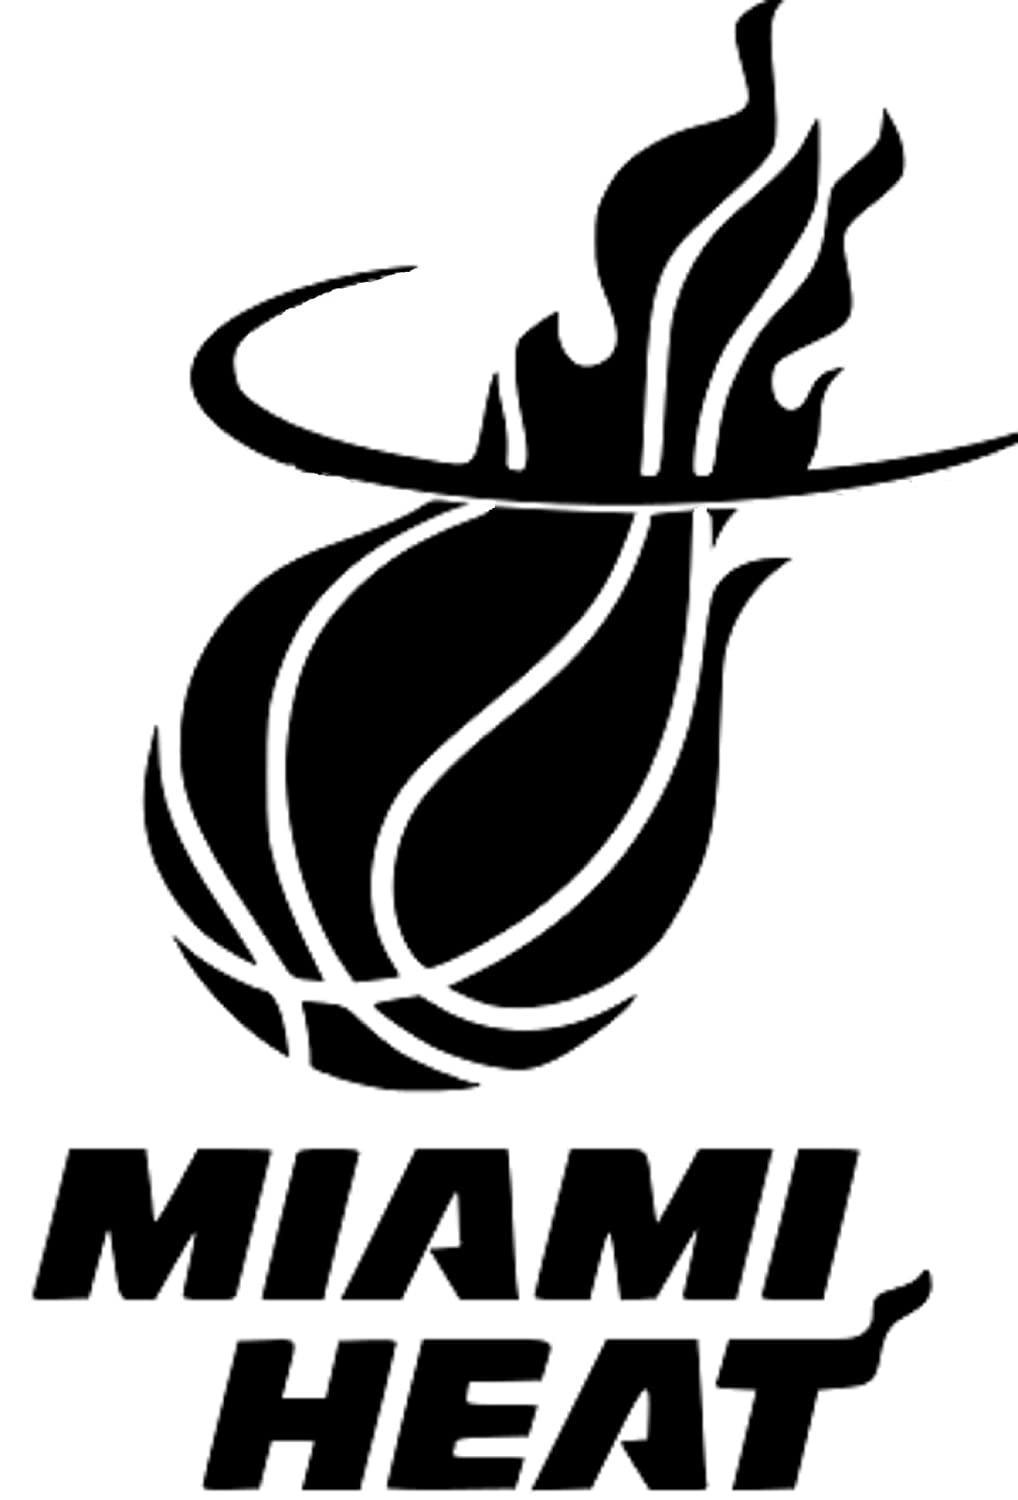 the gallery for gt miami heat black and white logo